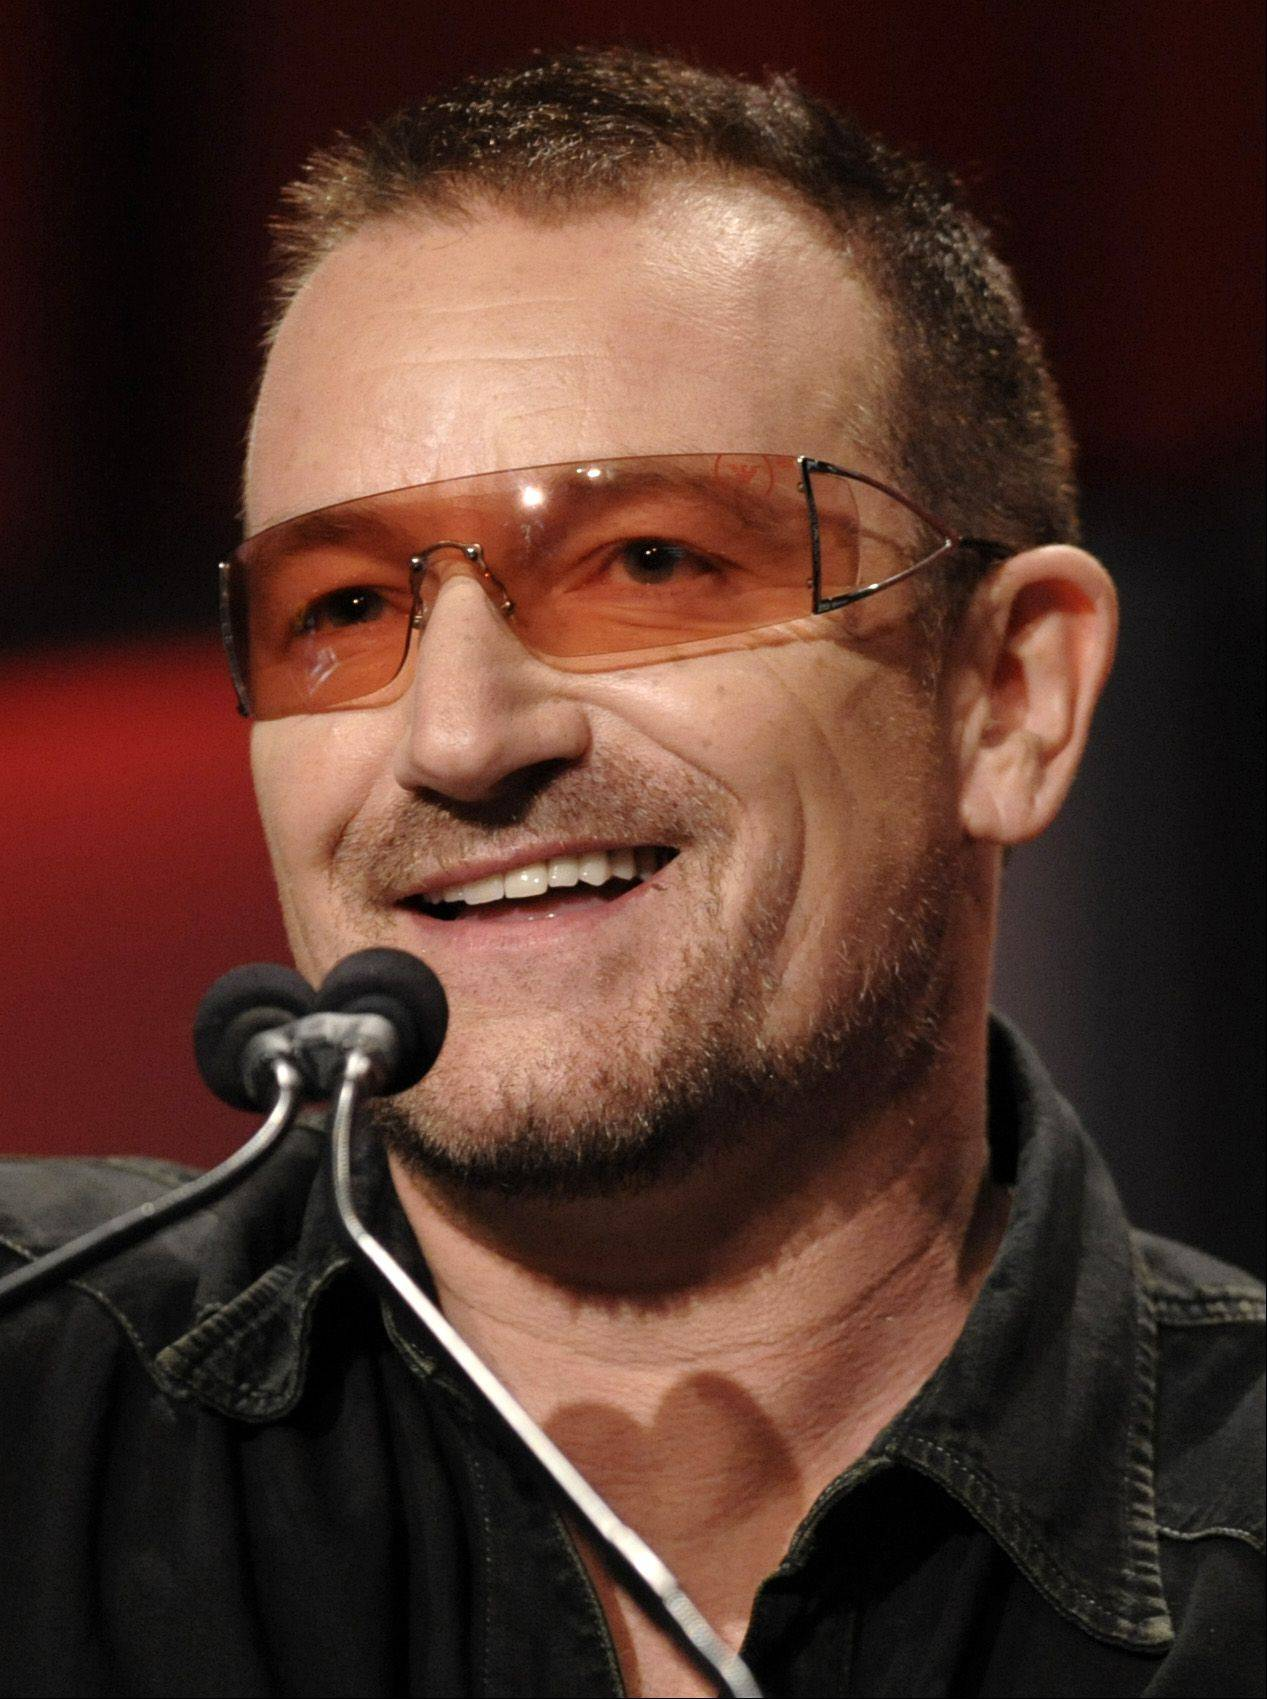 In this Oct. 22, 2008 file photo, Bono addresses the audience at The Women's Conference in Long Beach, Calif.